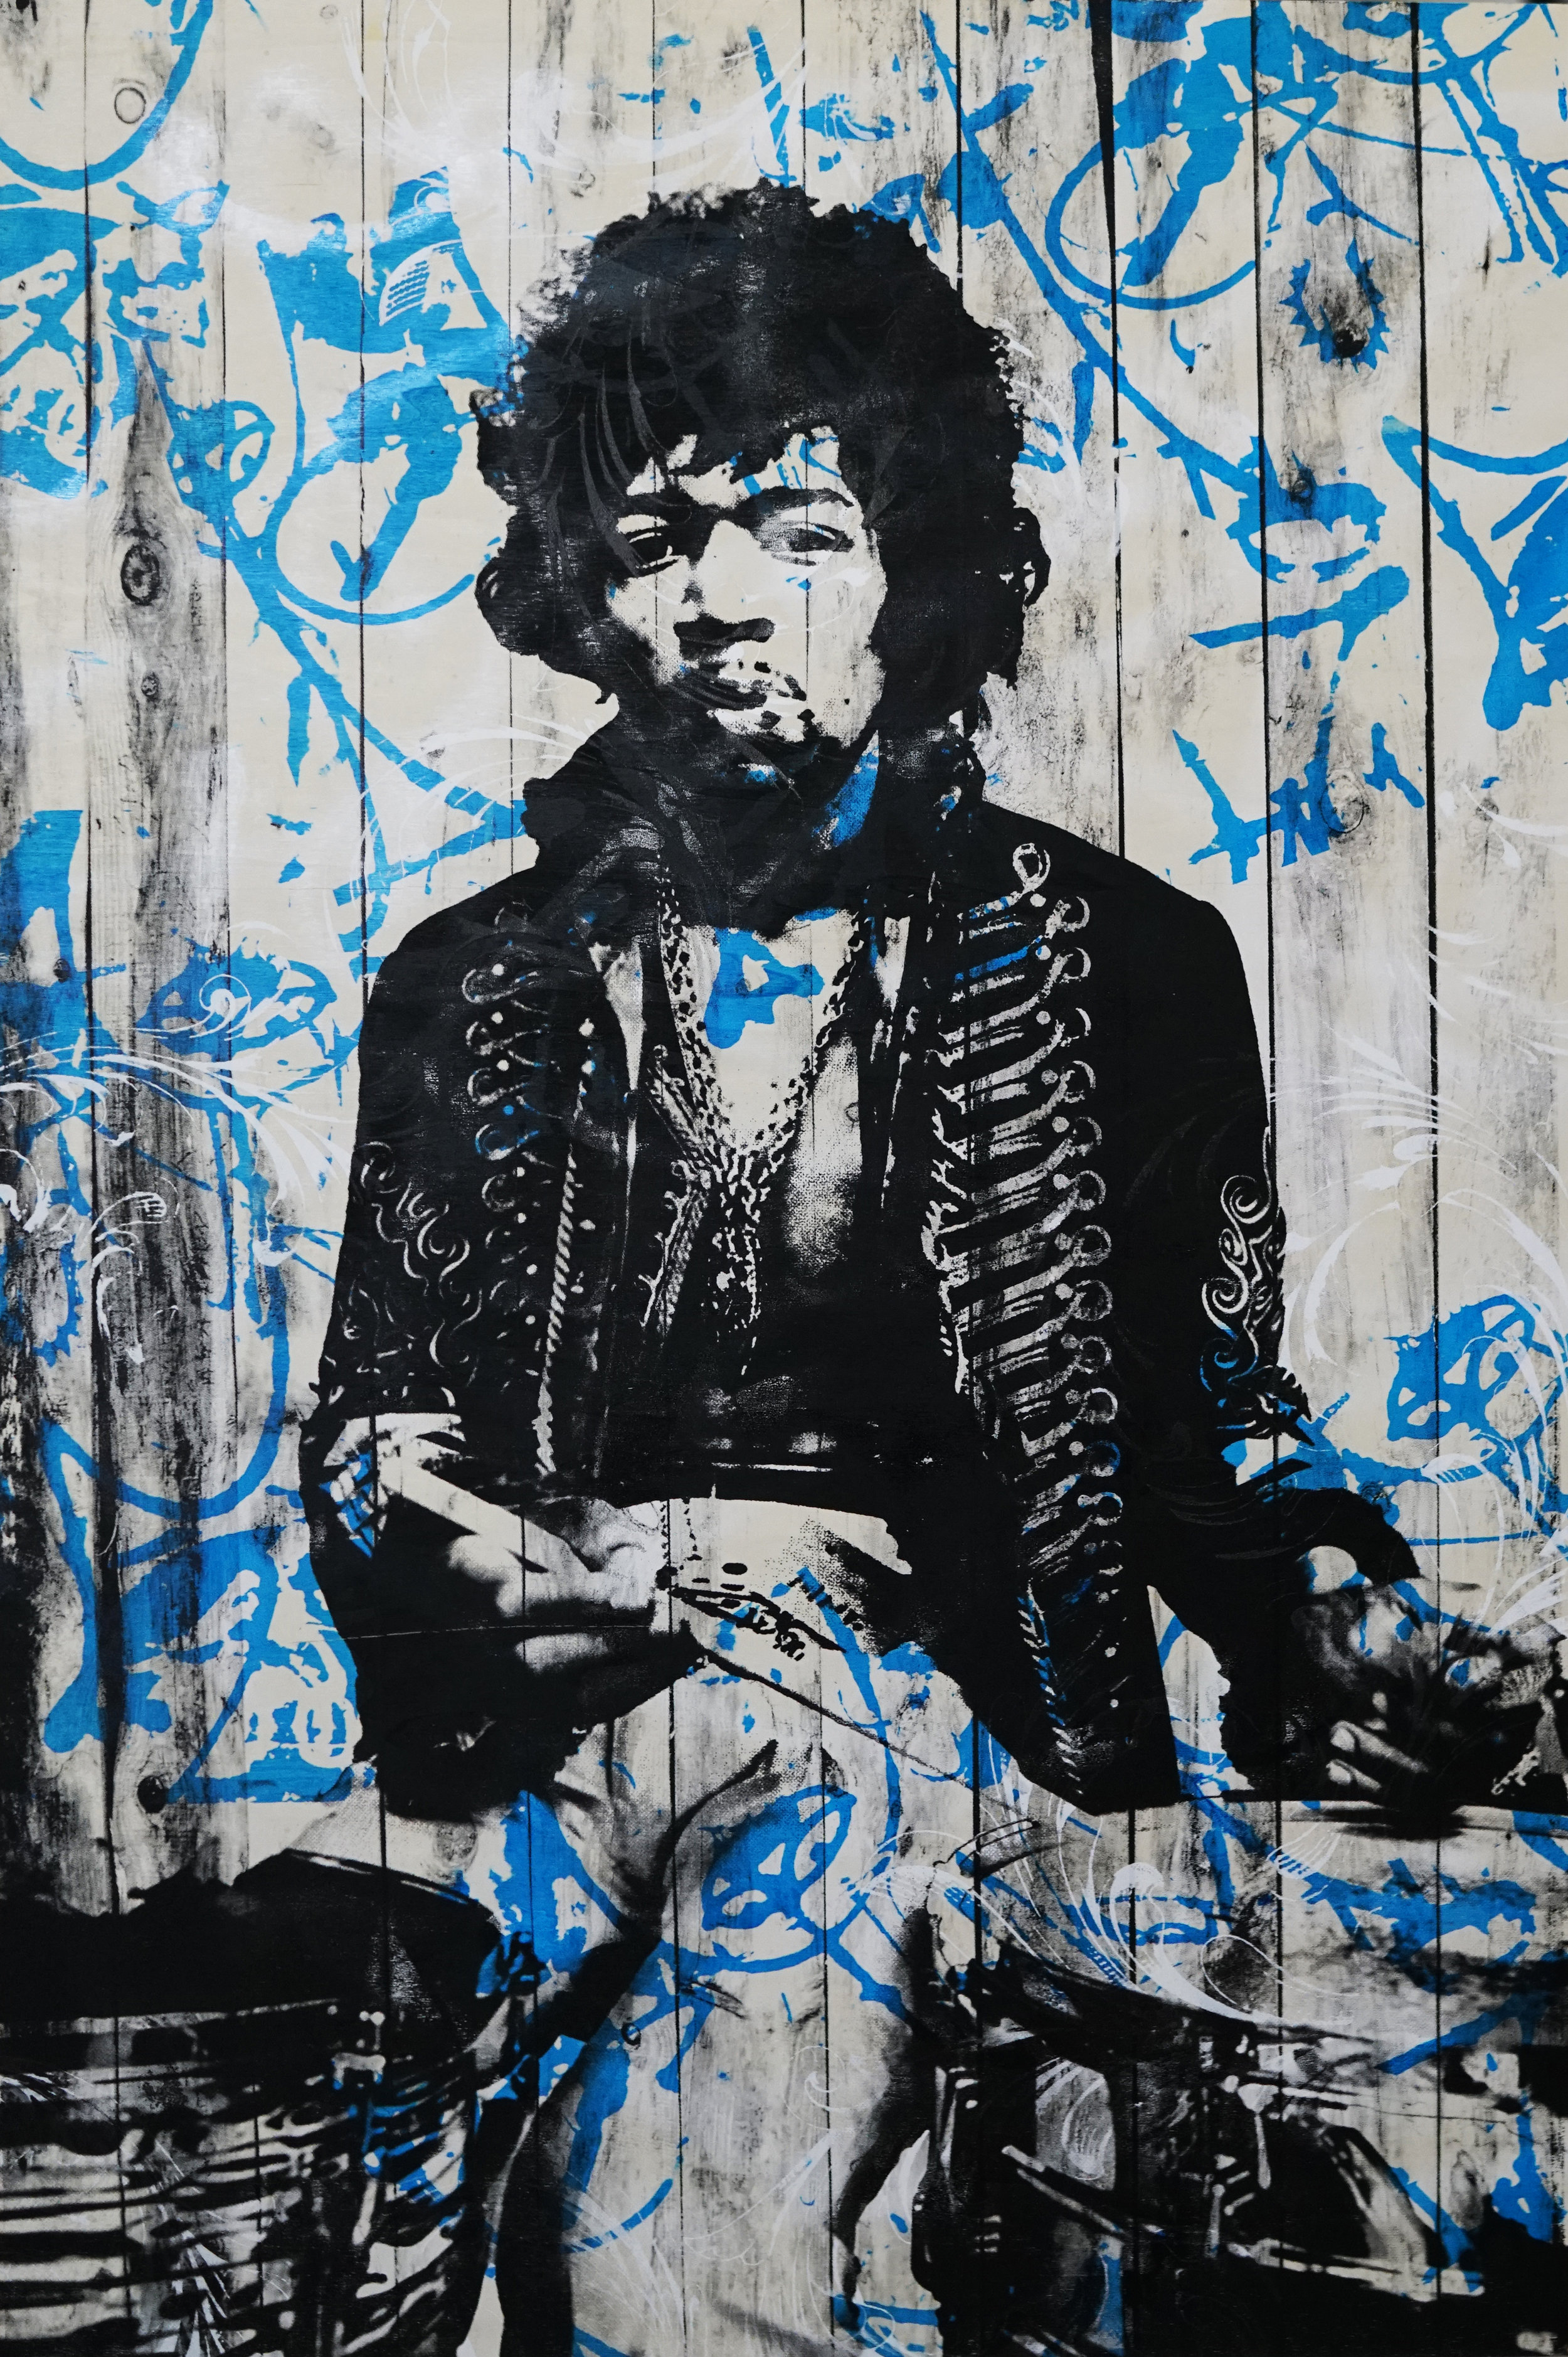 Jared Schwalb_Buster_2018 _24 x 36 inches_Aerosol and Hand Screen on wood panel_$2,400.jpg